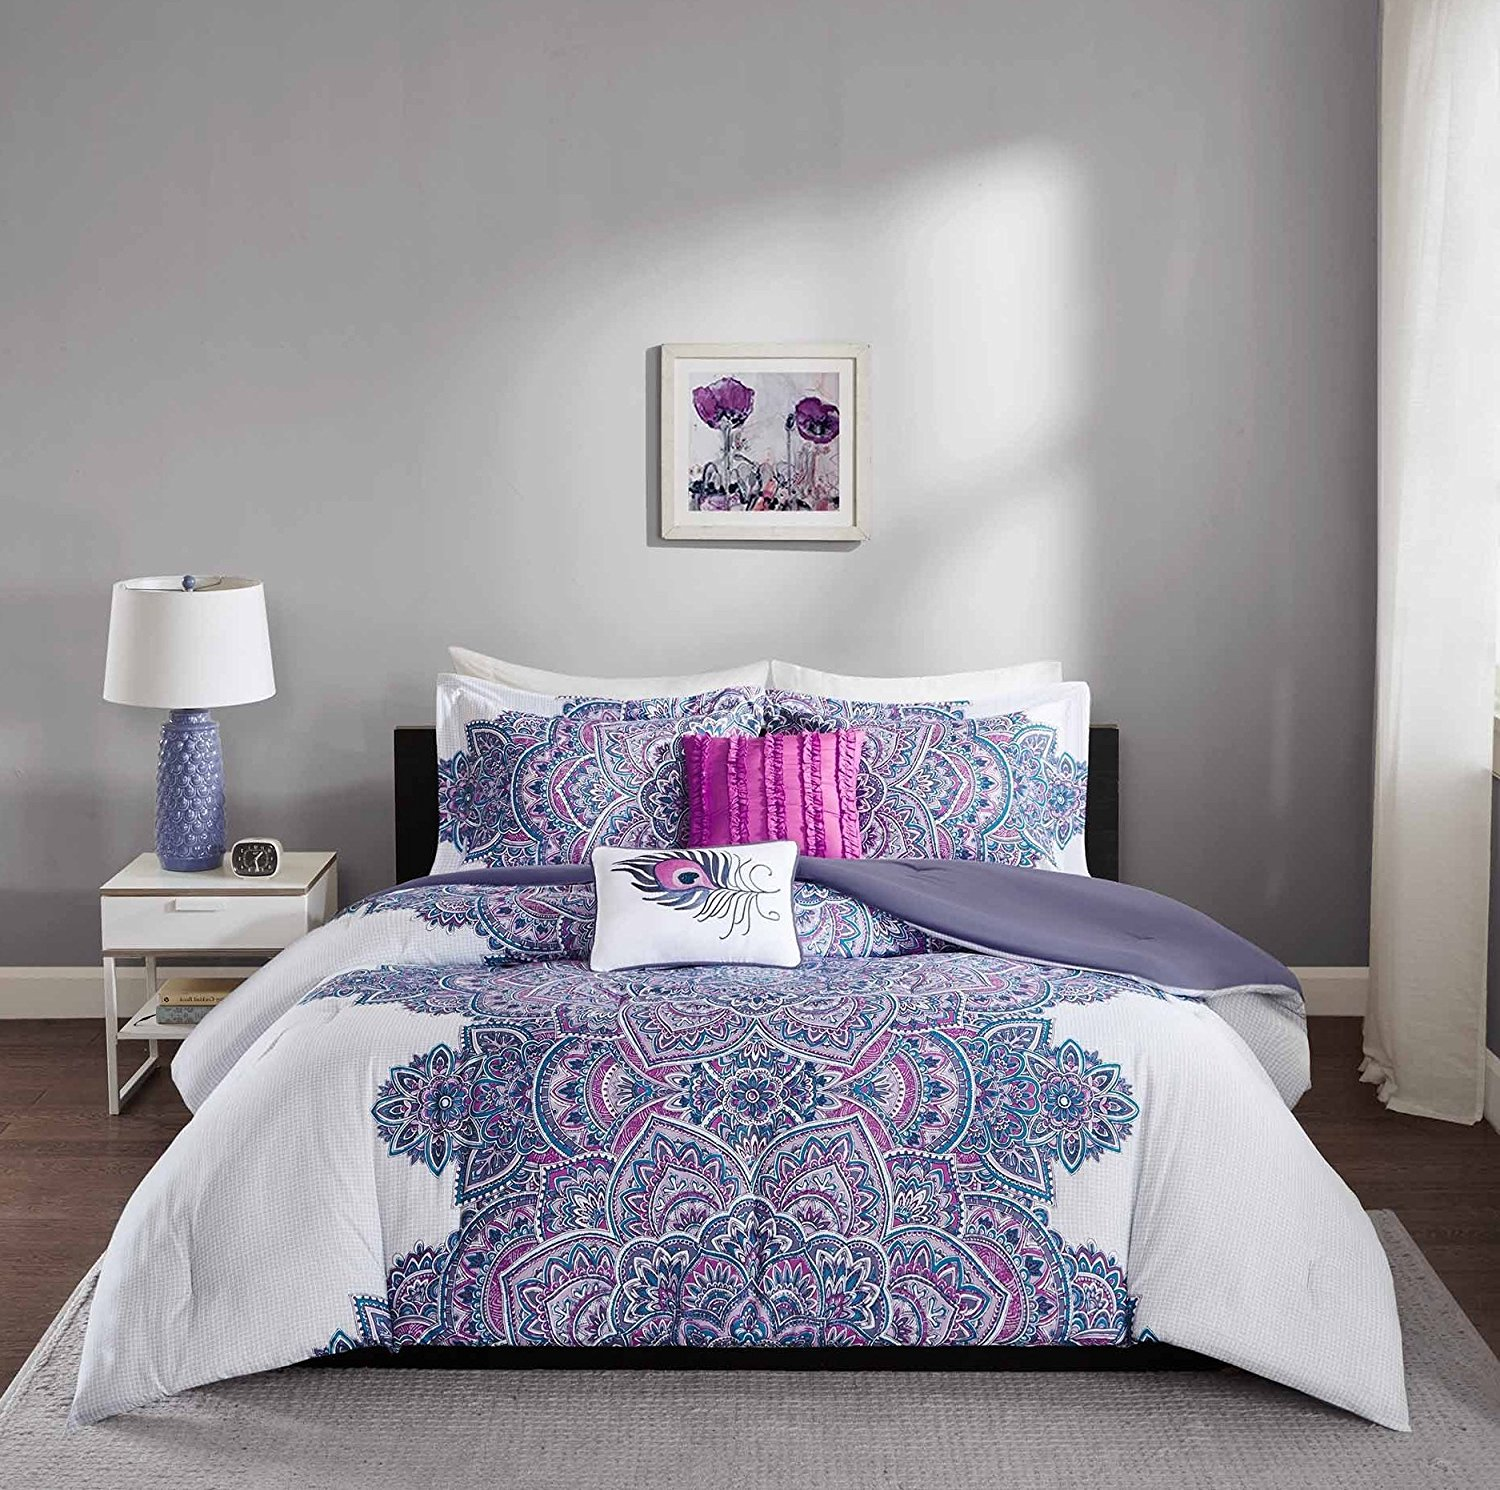 4 Piece Girls Medallion Floral Comforter Twin XL Set, Beautiful All Over Mandala Motif Bedding, Pretty Multi Flower Bohemian Boho Chic Themed, Abstract Geometric Flowers Pattern, White Blue Purple